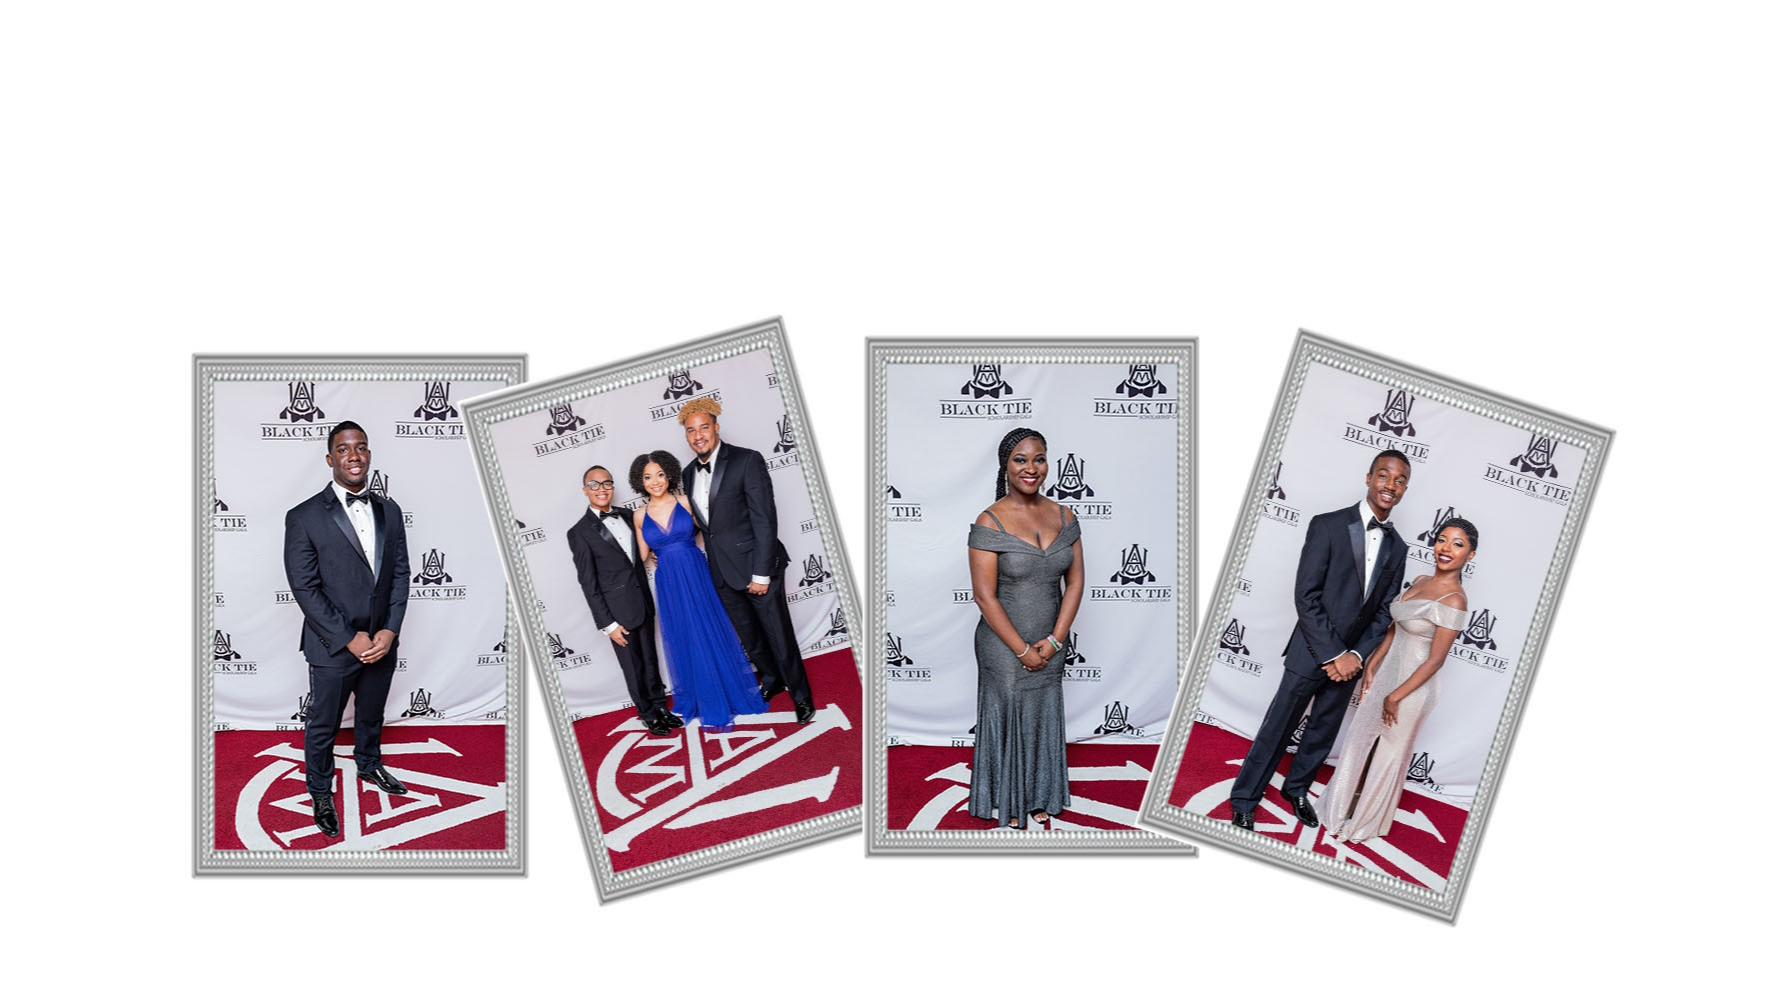 Photo for Alabama A&M University 21st  Annual Black Tie Scholarship Gala Presented by MT3 Properties on ViewStub